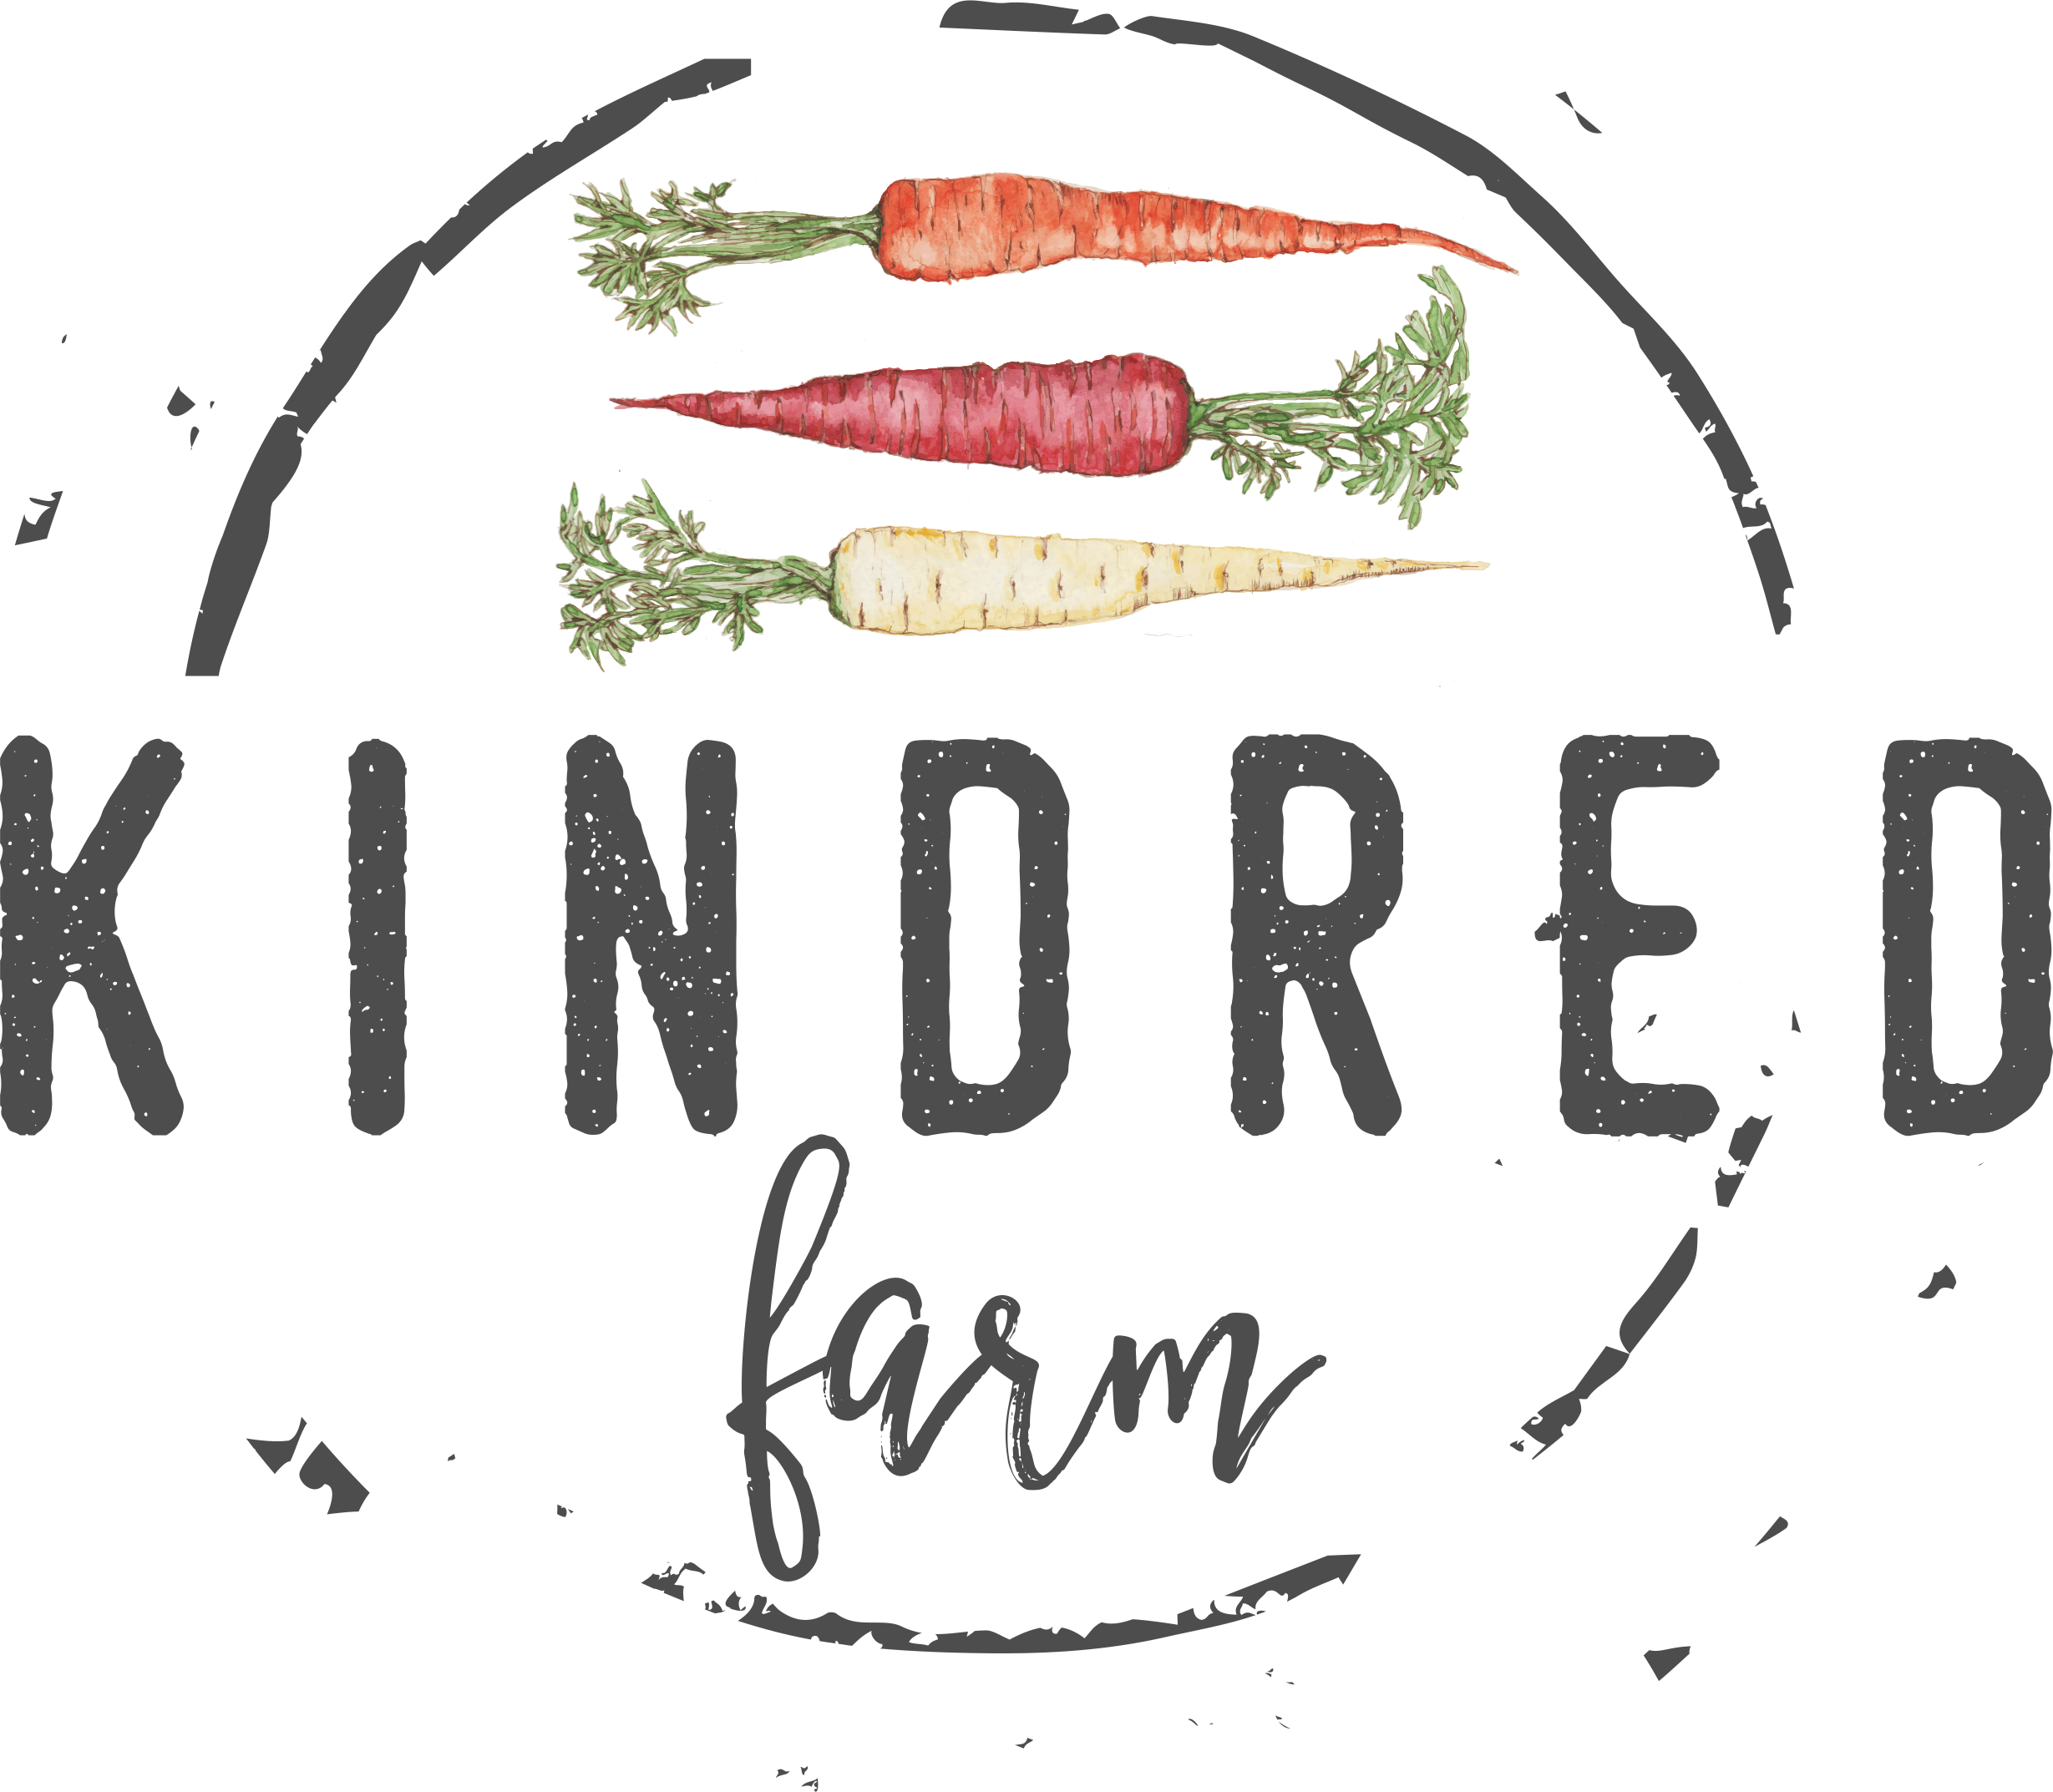 Create Kindred Farm logo to help launch organic & sustainable produce venture